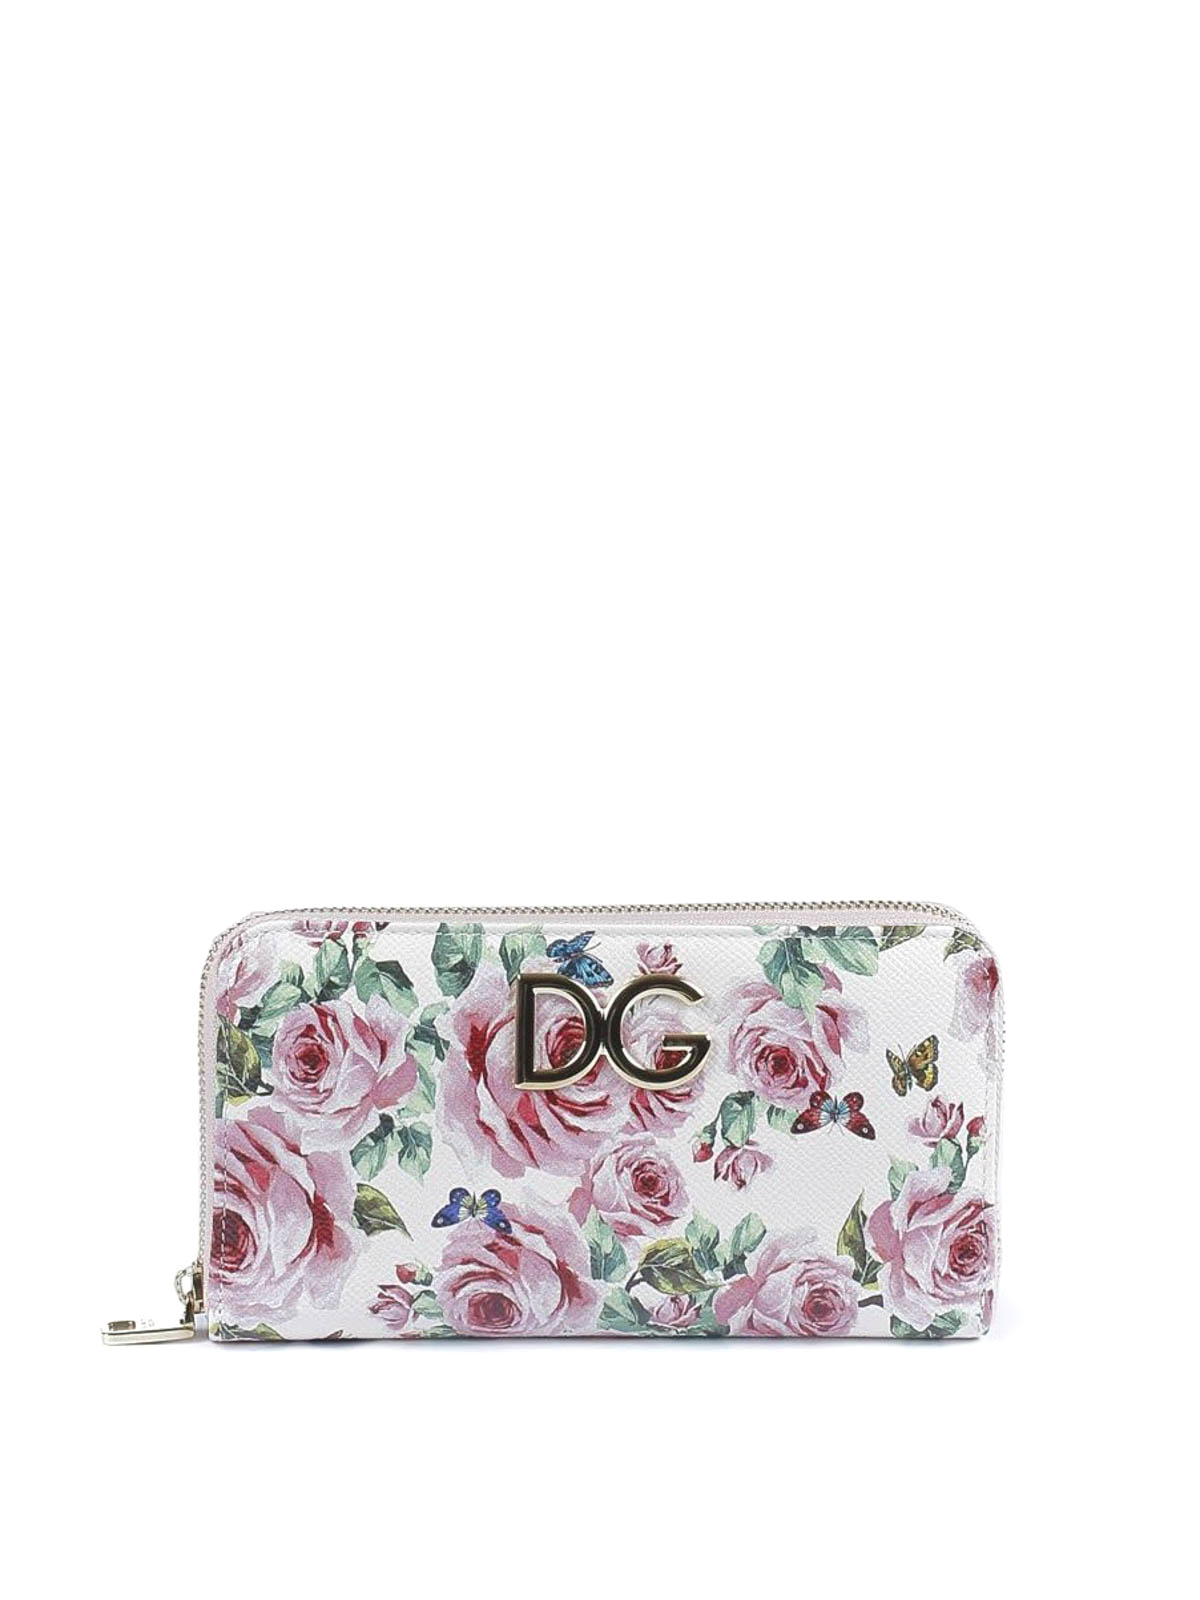 Dauphine leather wallet with roses print Dolce & Gabbana j0Modaln6